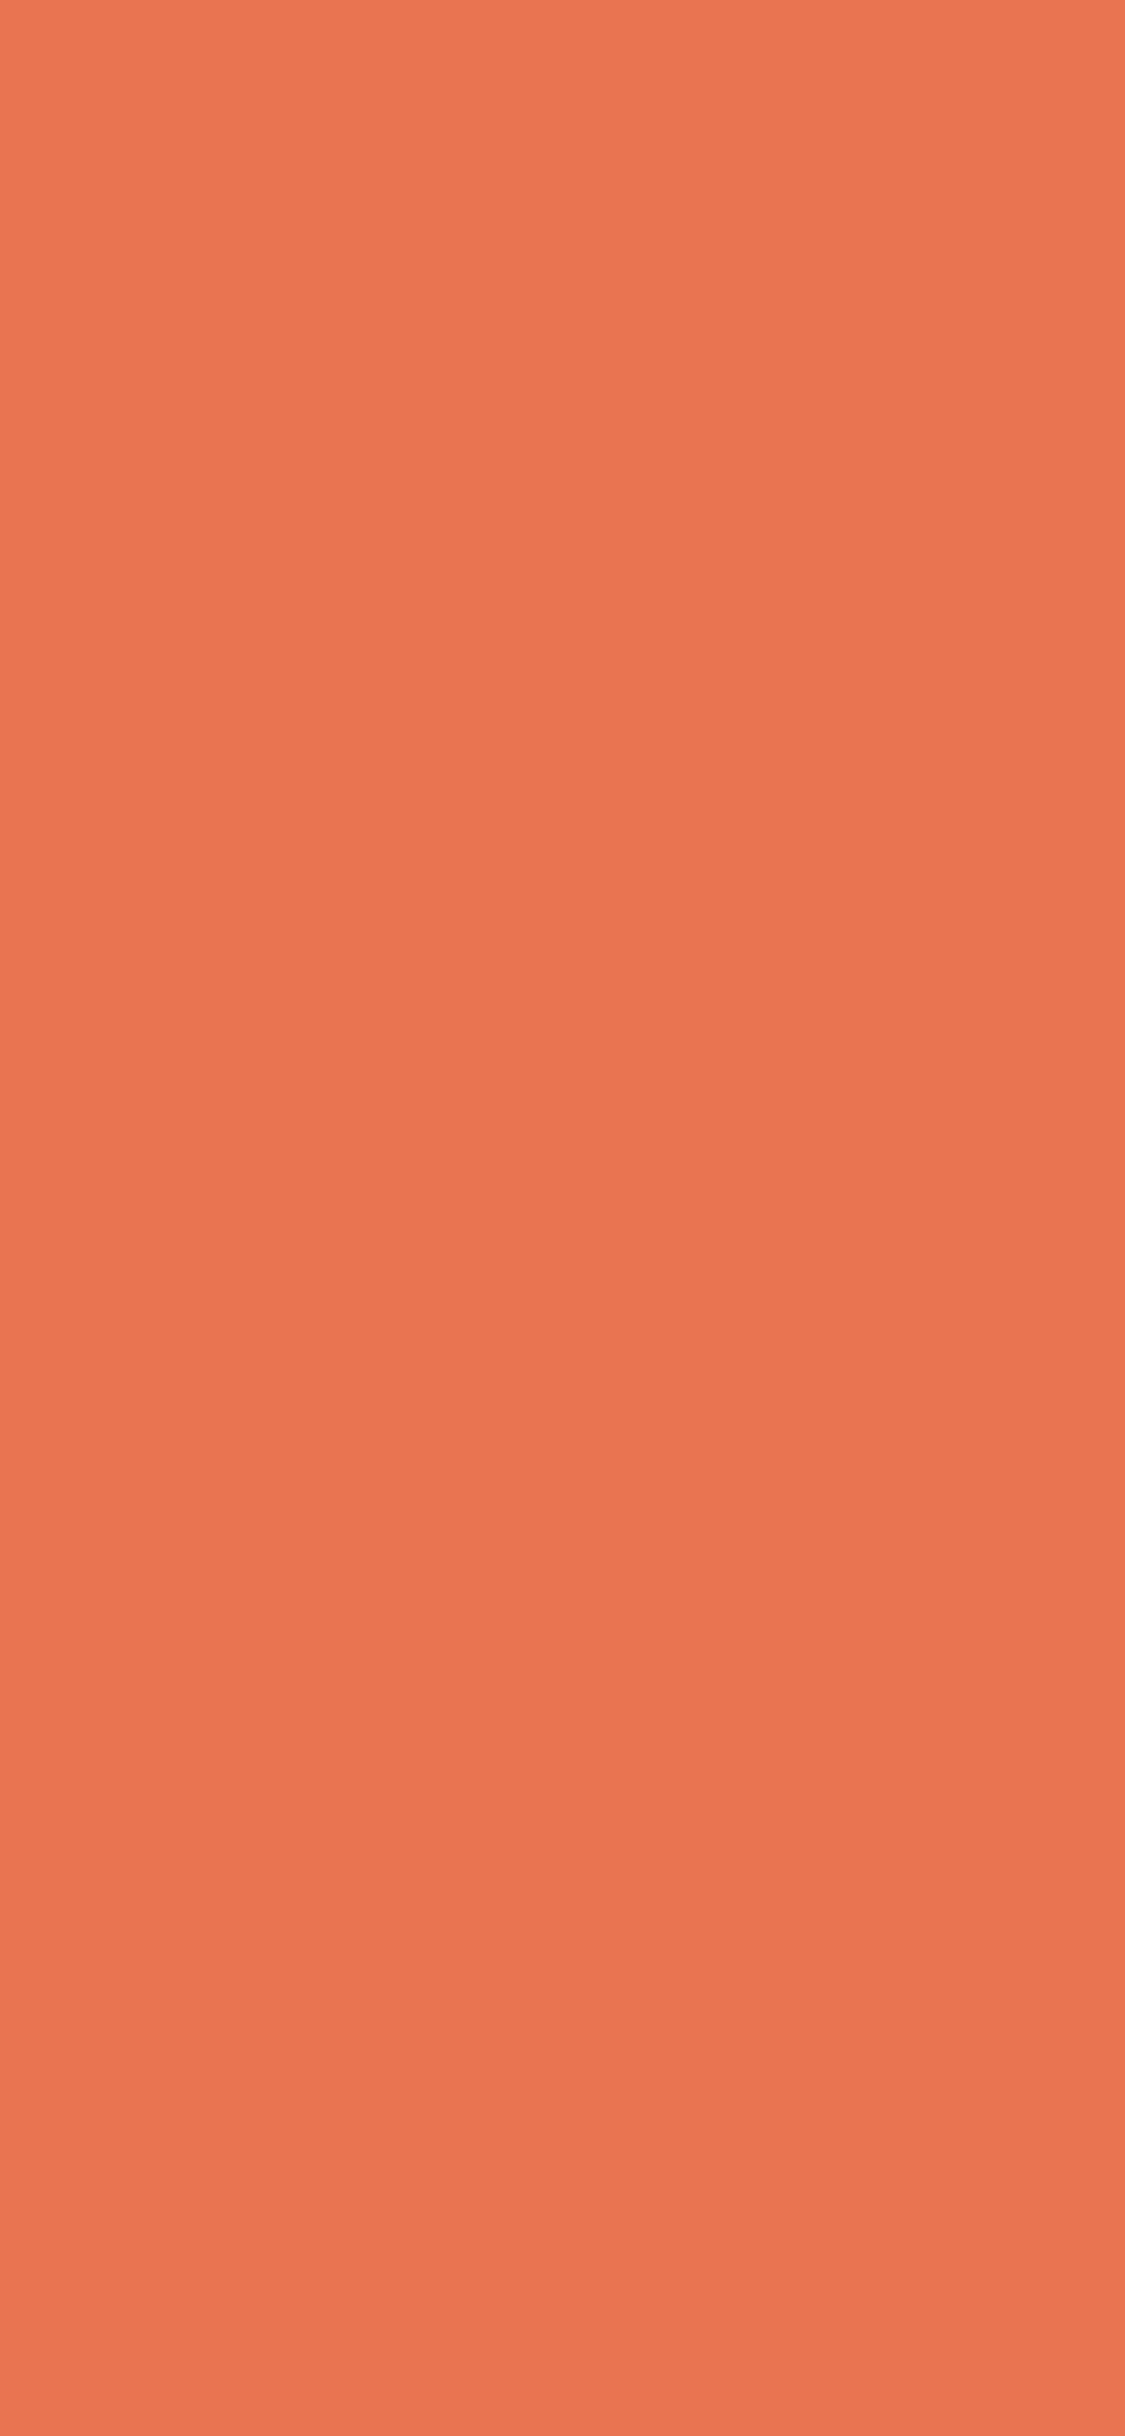 1125x2436 Light Red Ochre Solid Color Background